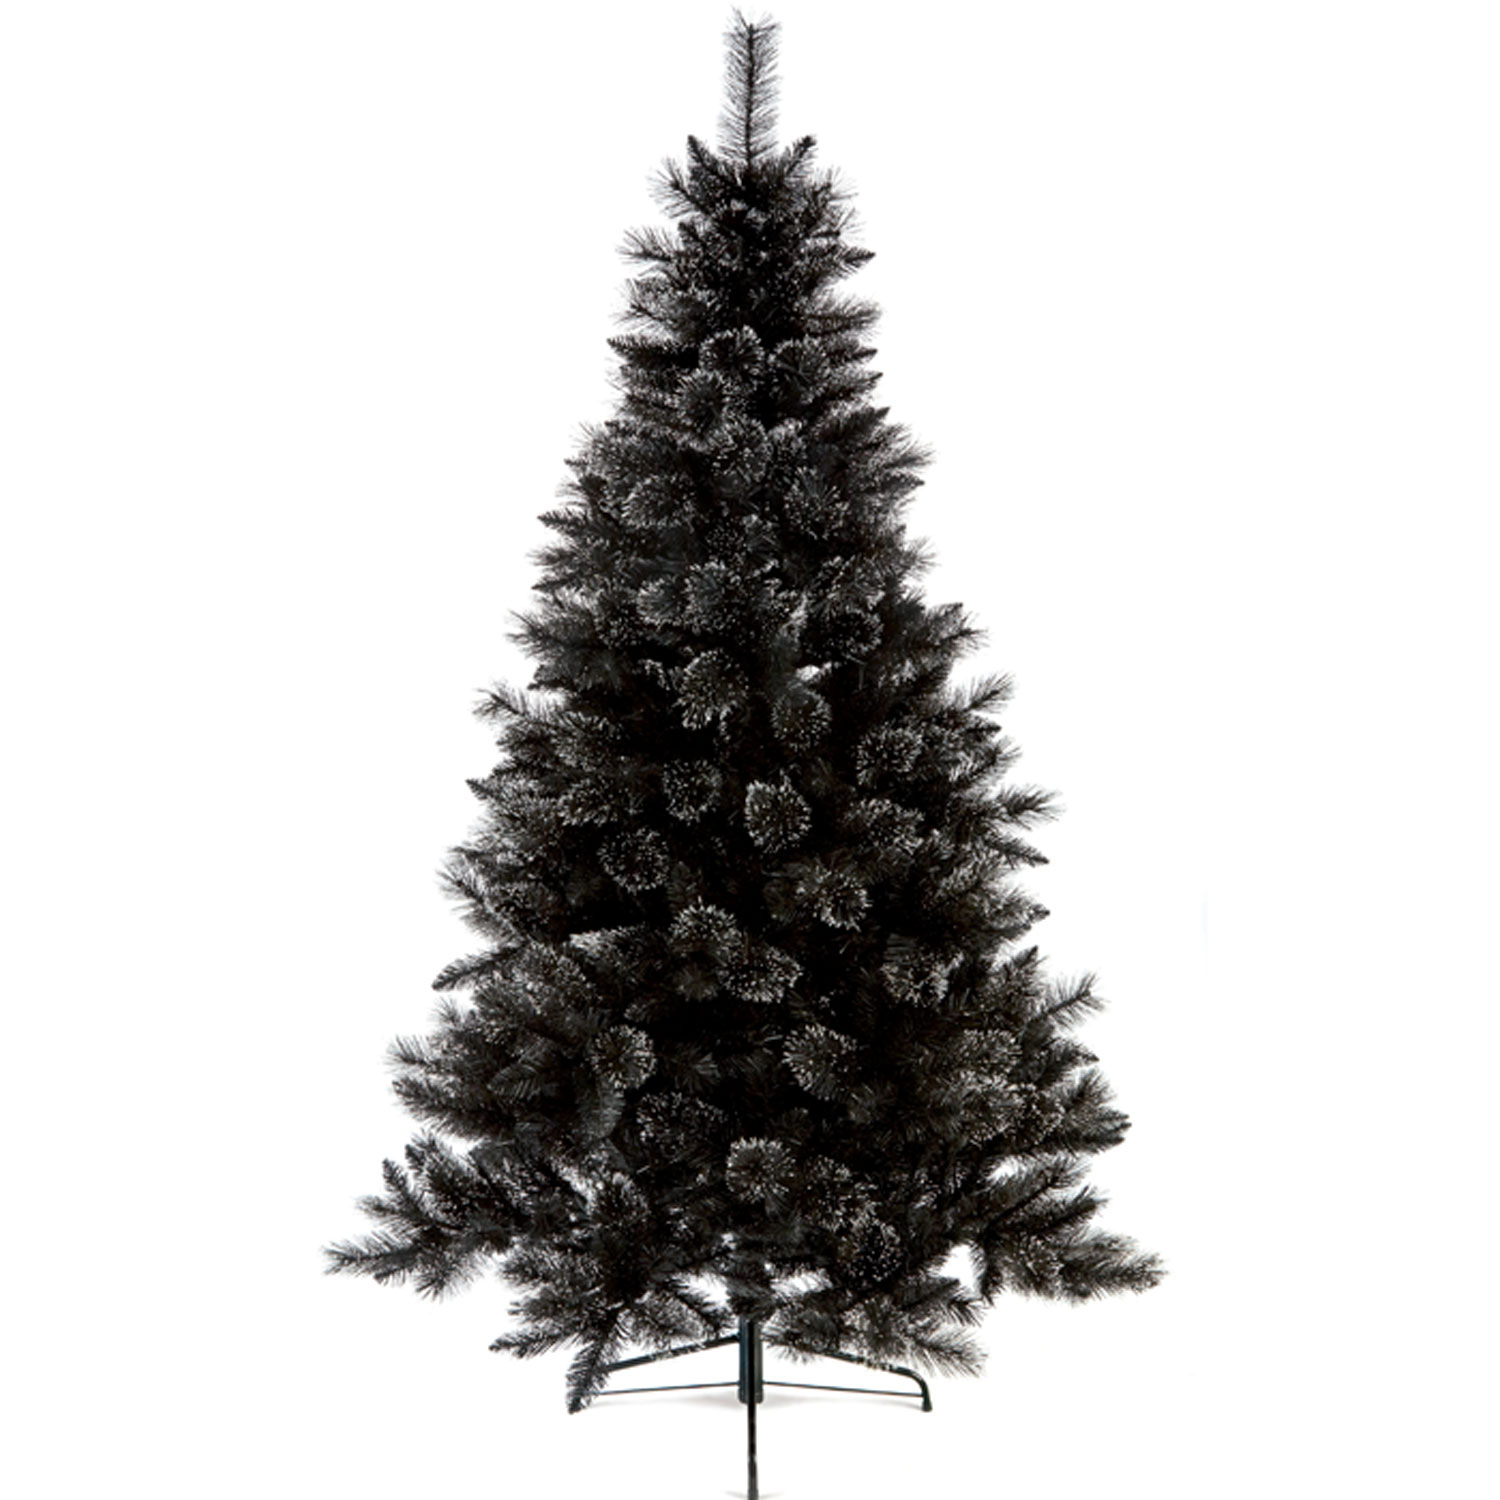 Large m artificial christmas glitter tree realistic